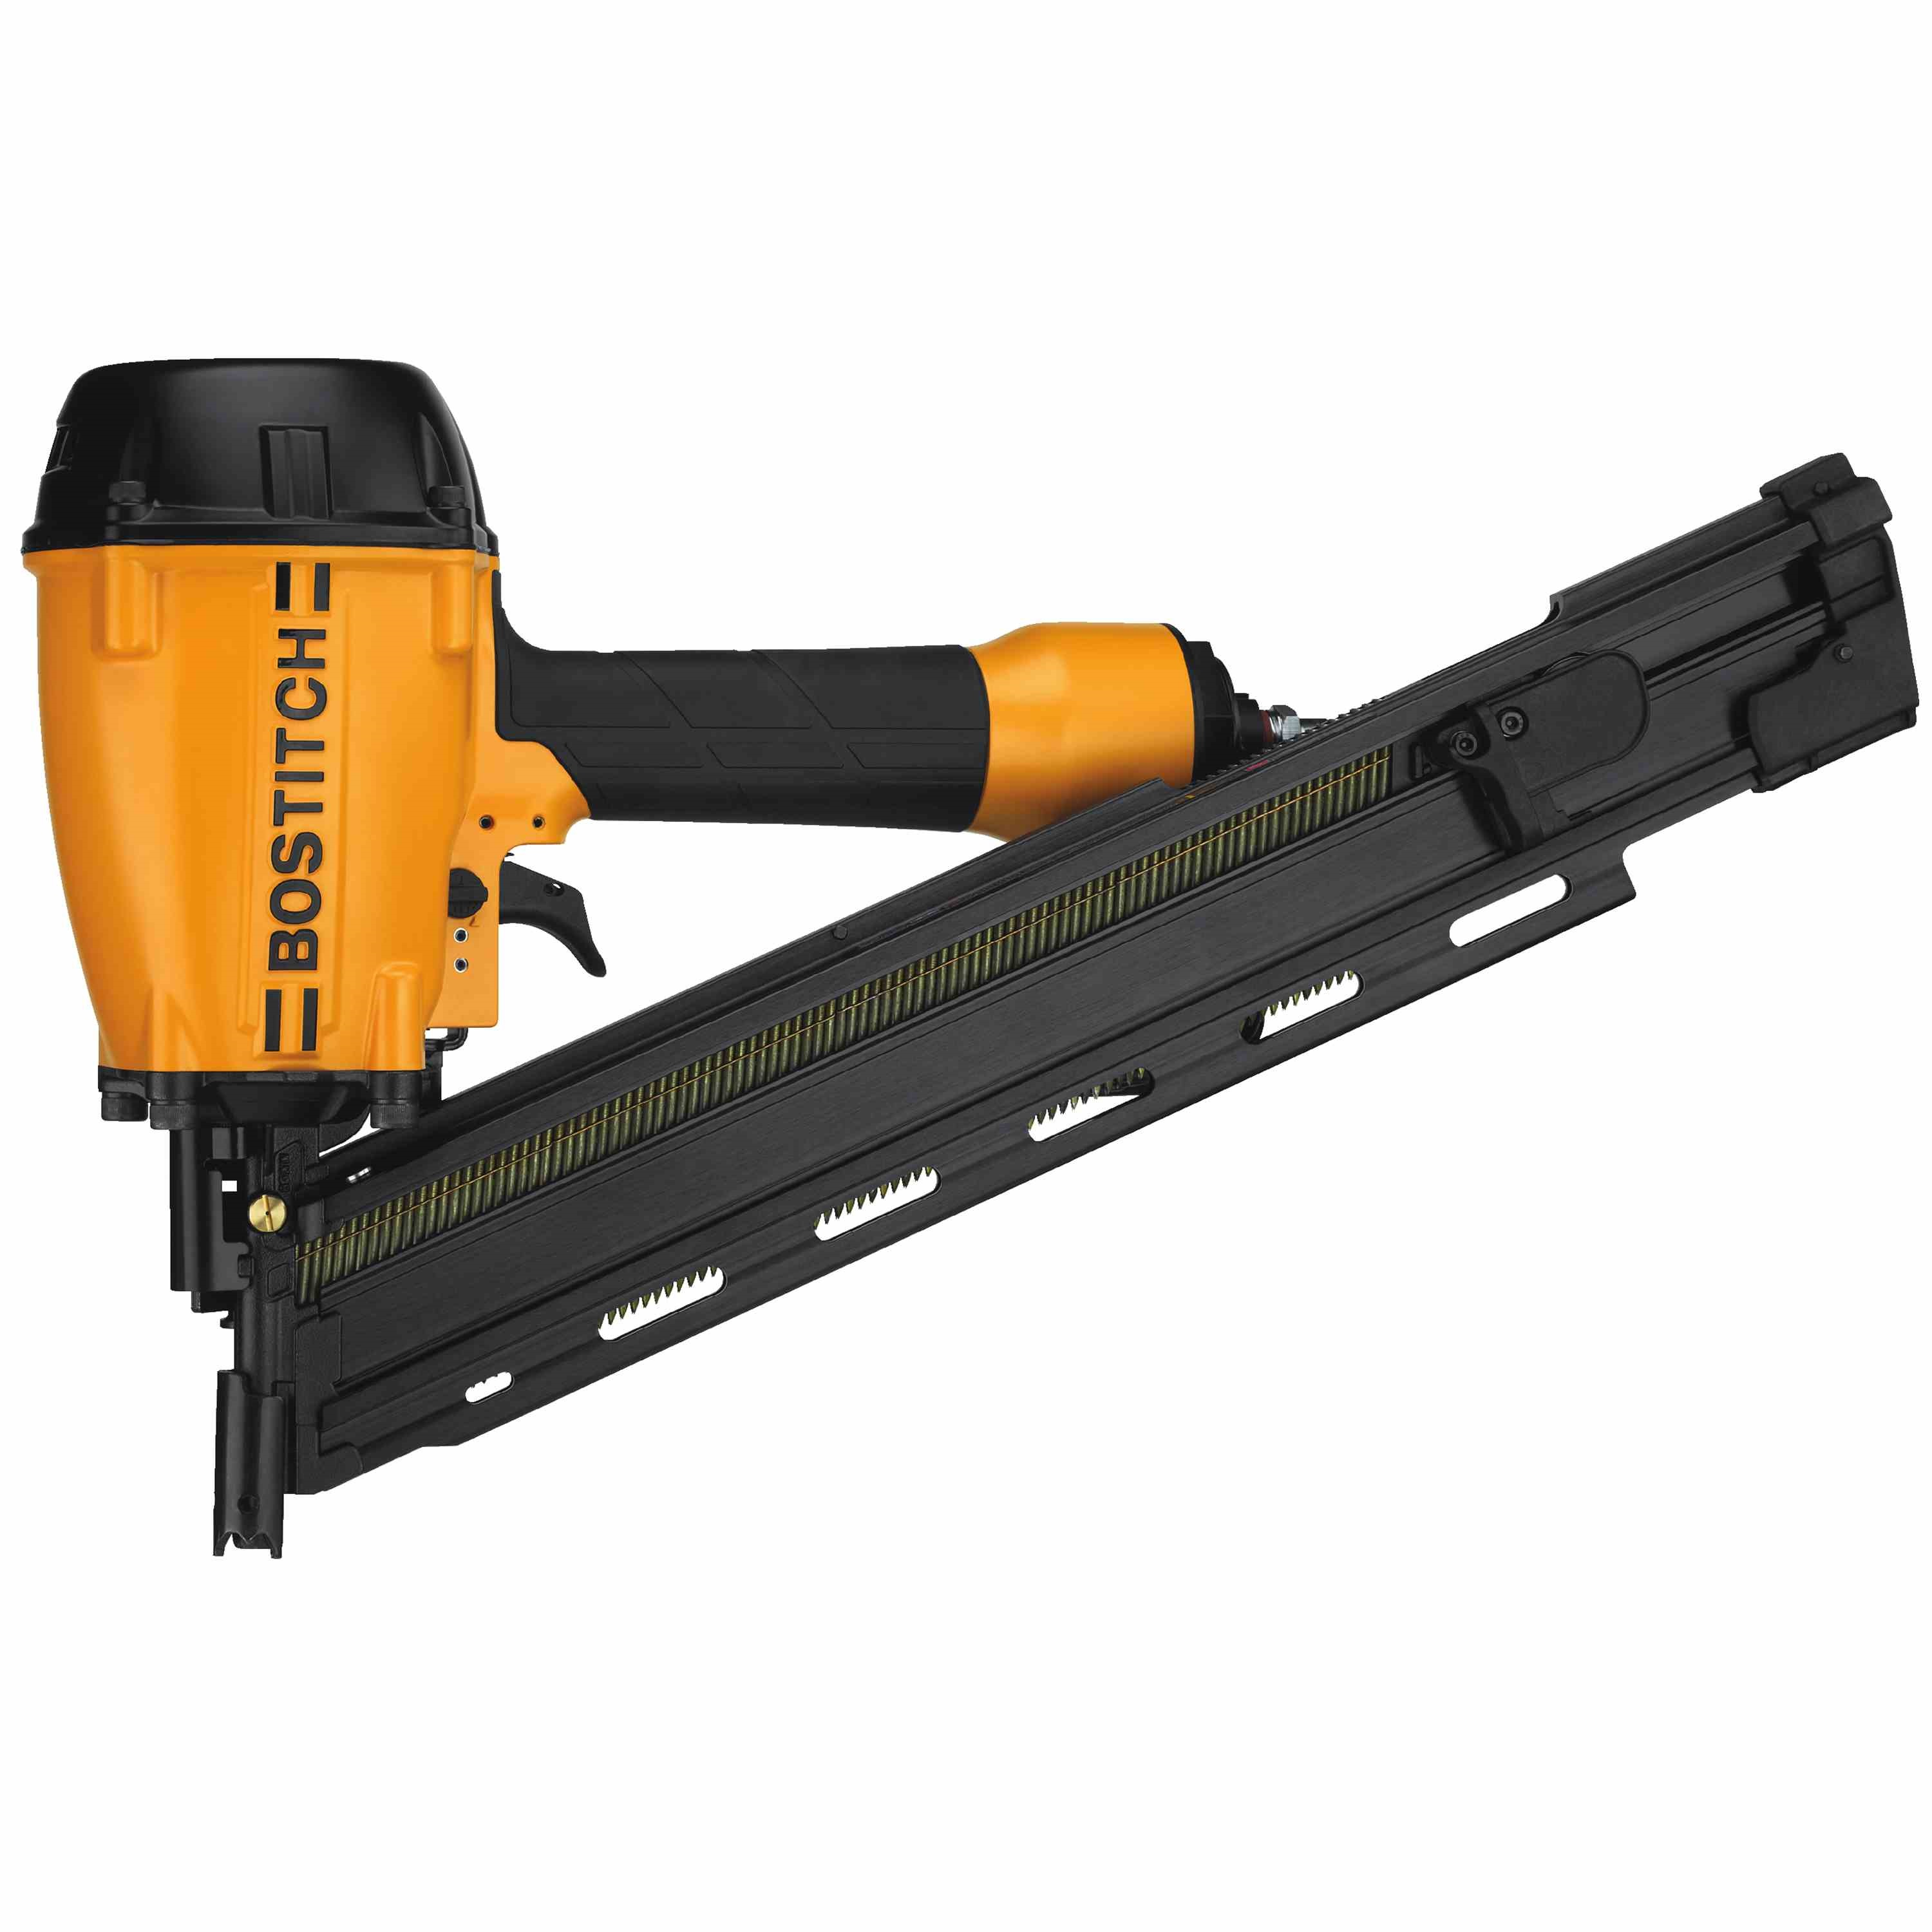 btf83ww 28 degree wire weld framing nailer